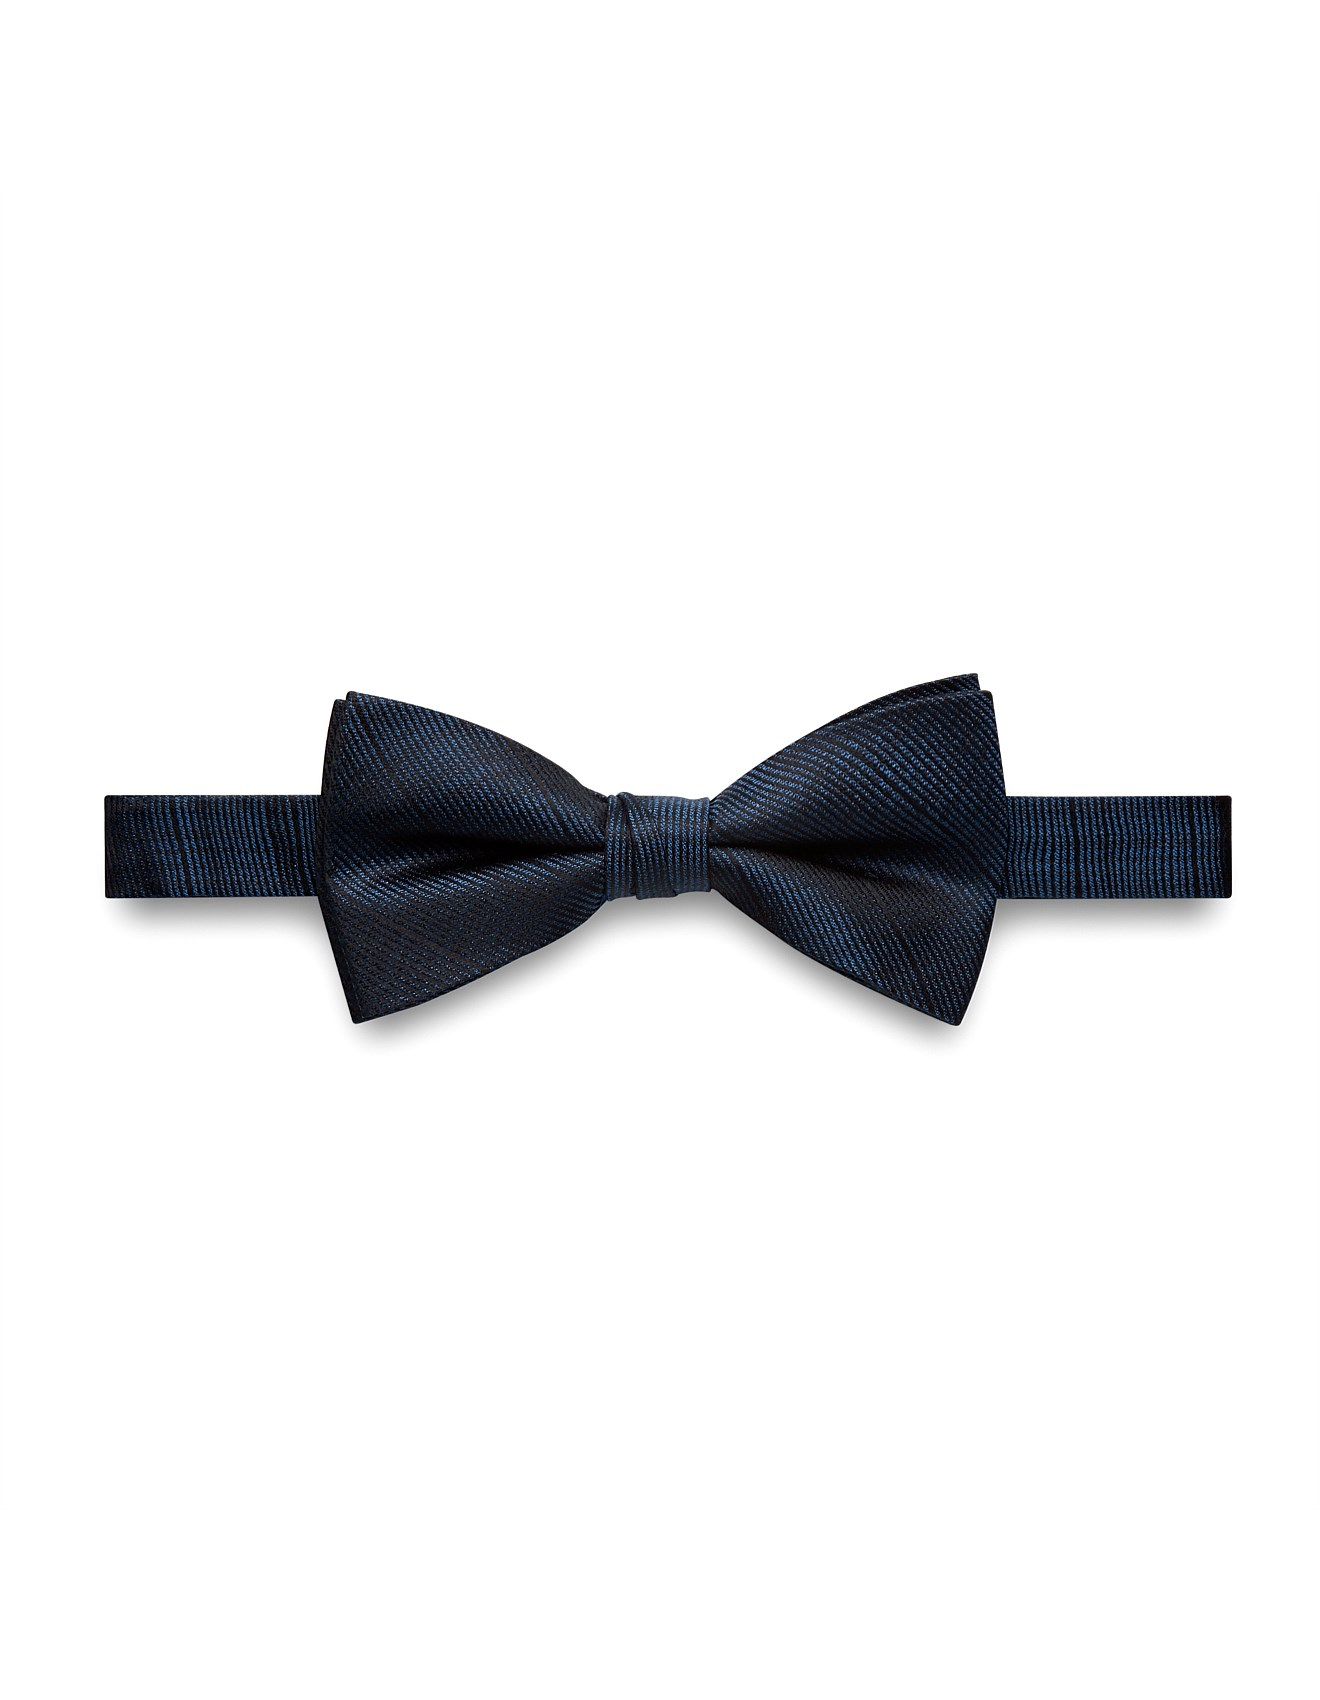 d0a8ac359ff6 Men's Bow Ties | Buy Bow Ties Online | David Jones - Niklas Formal ...